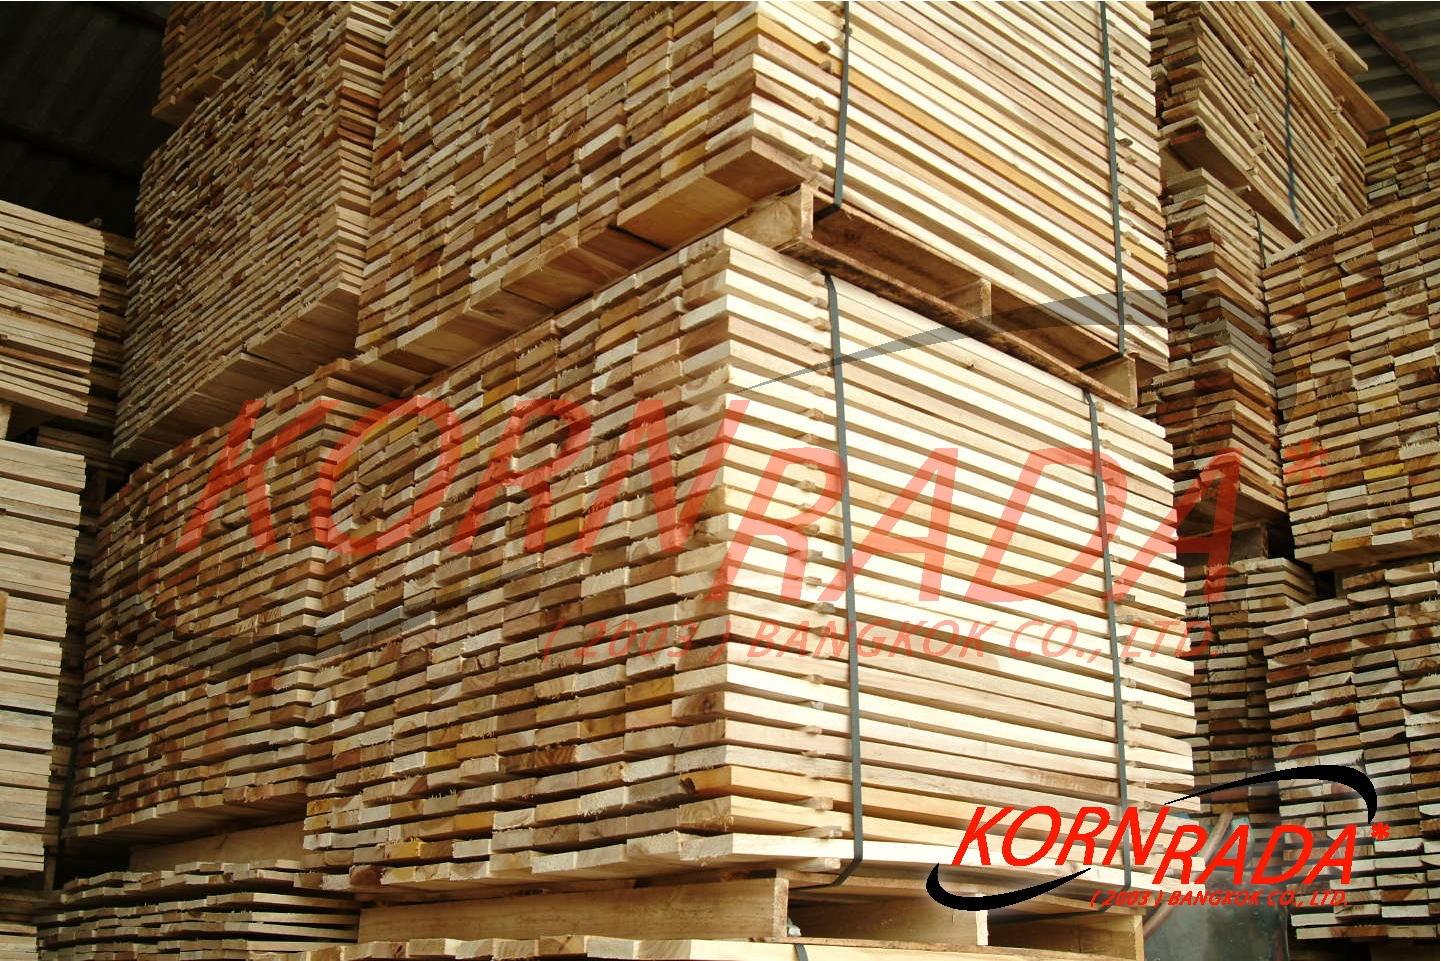 kornrada_products_1378